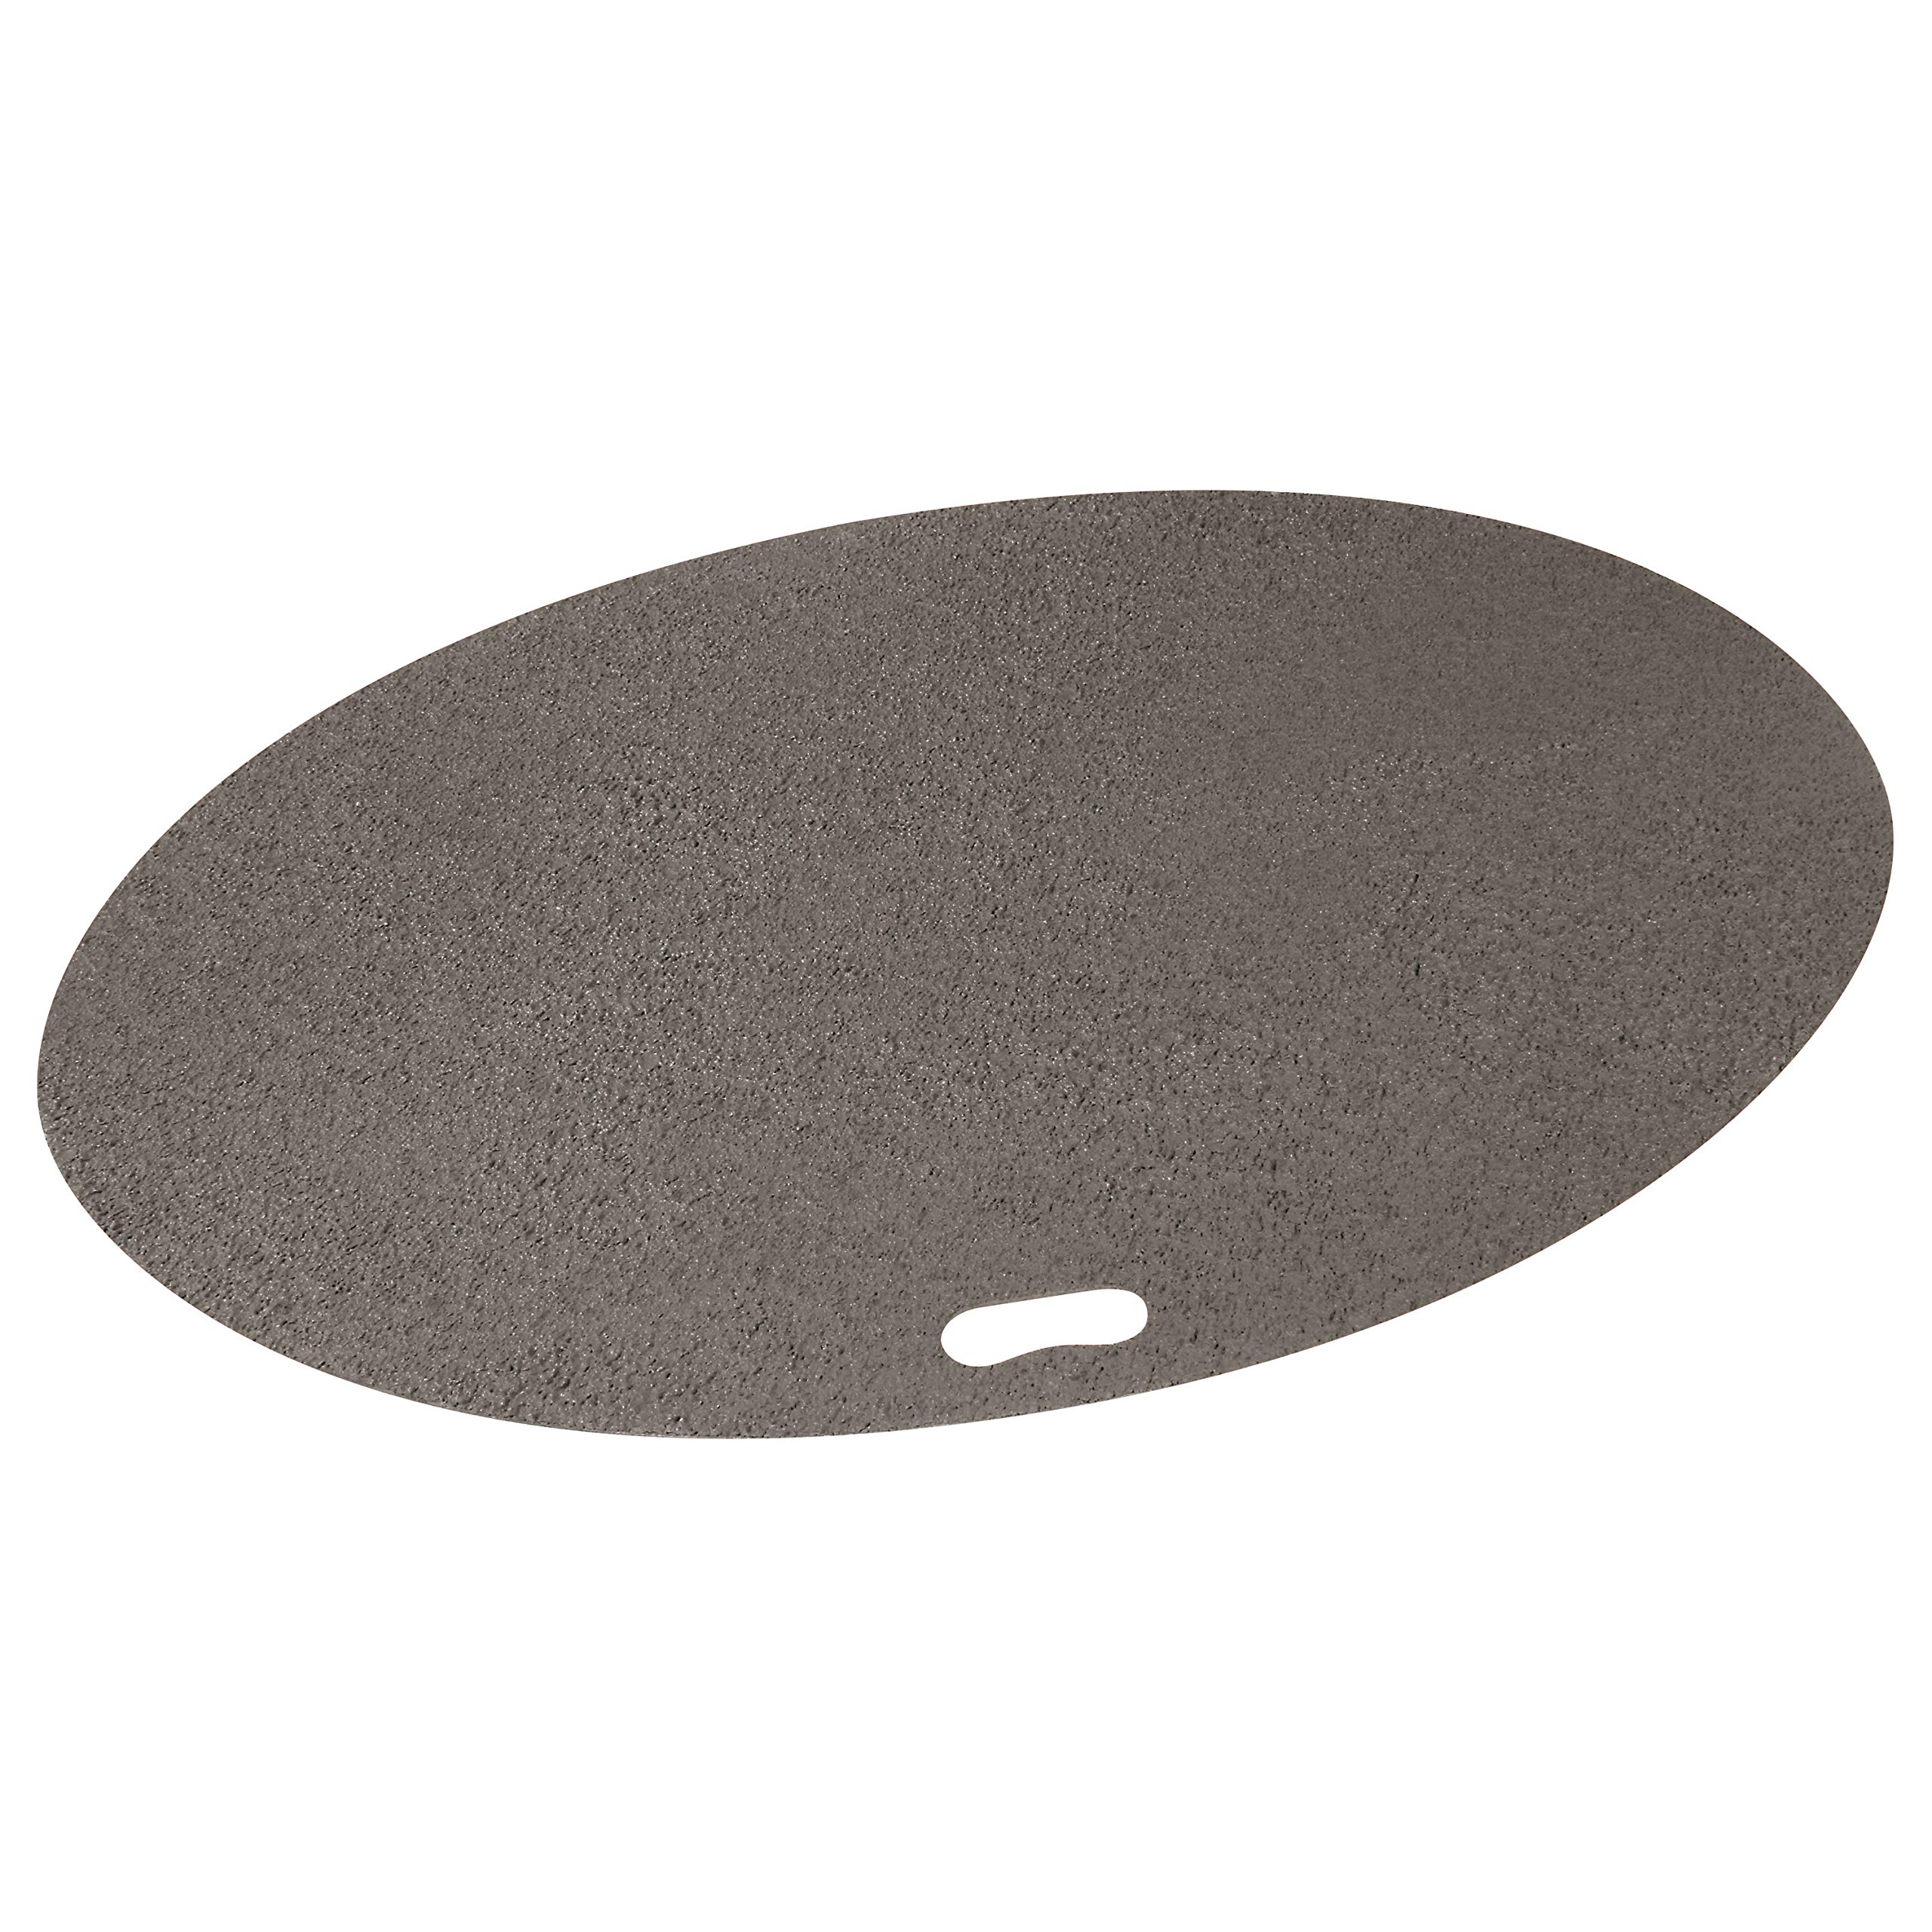 The Original Grill Pad Gray Grill Pad, Oval by The Original Grill Pad